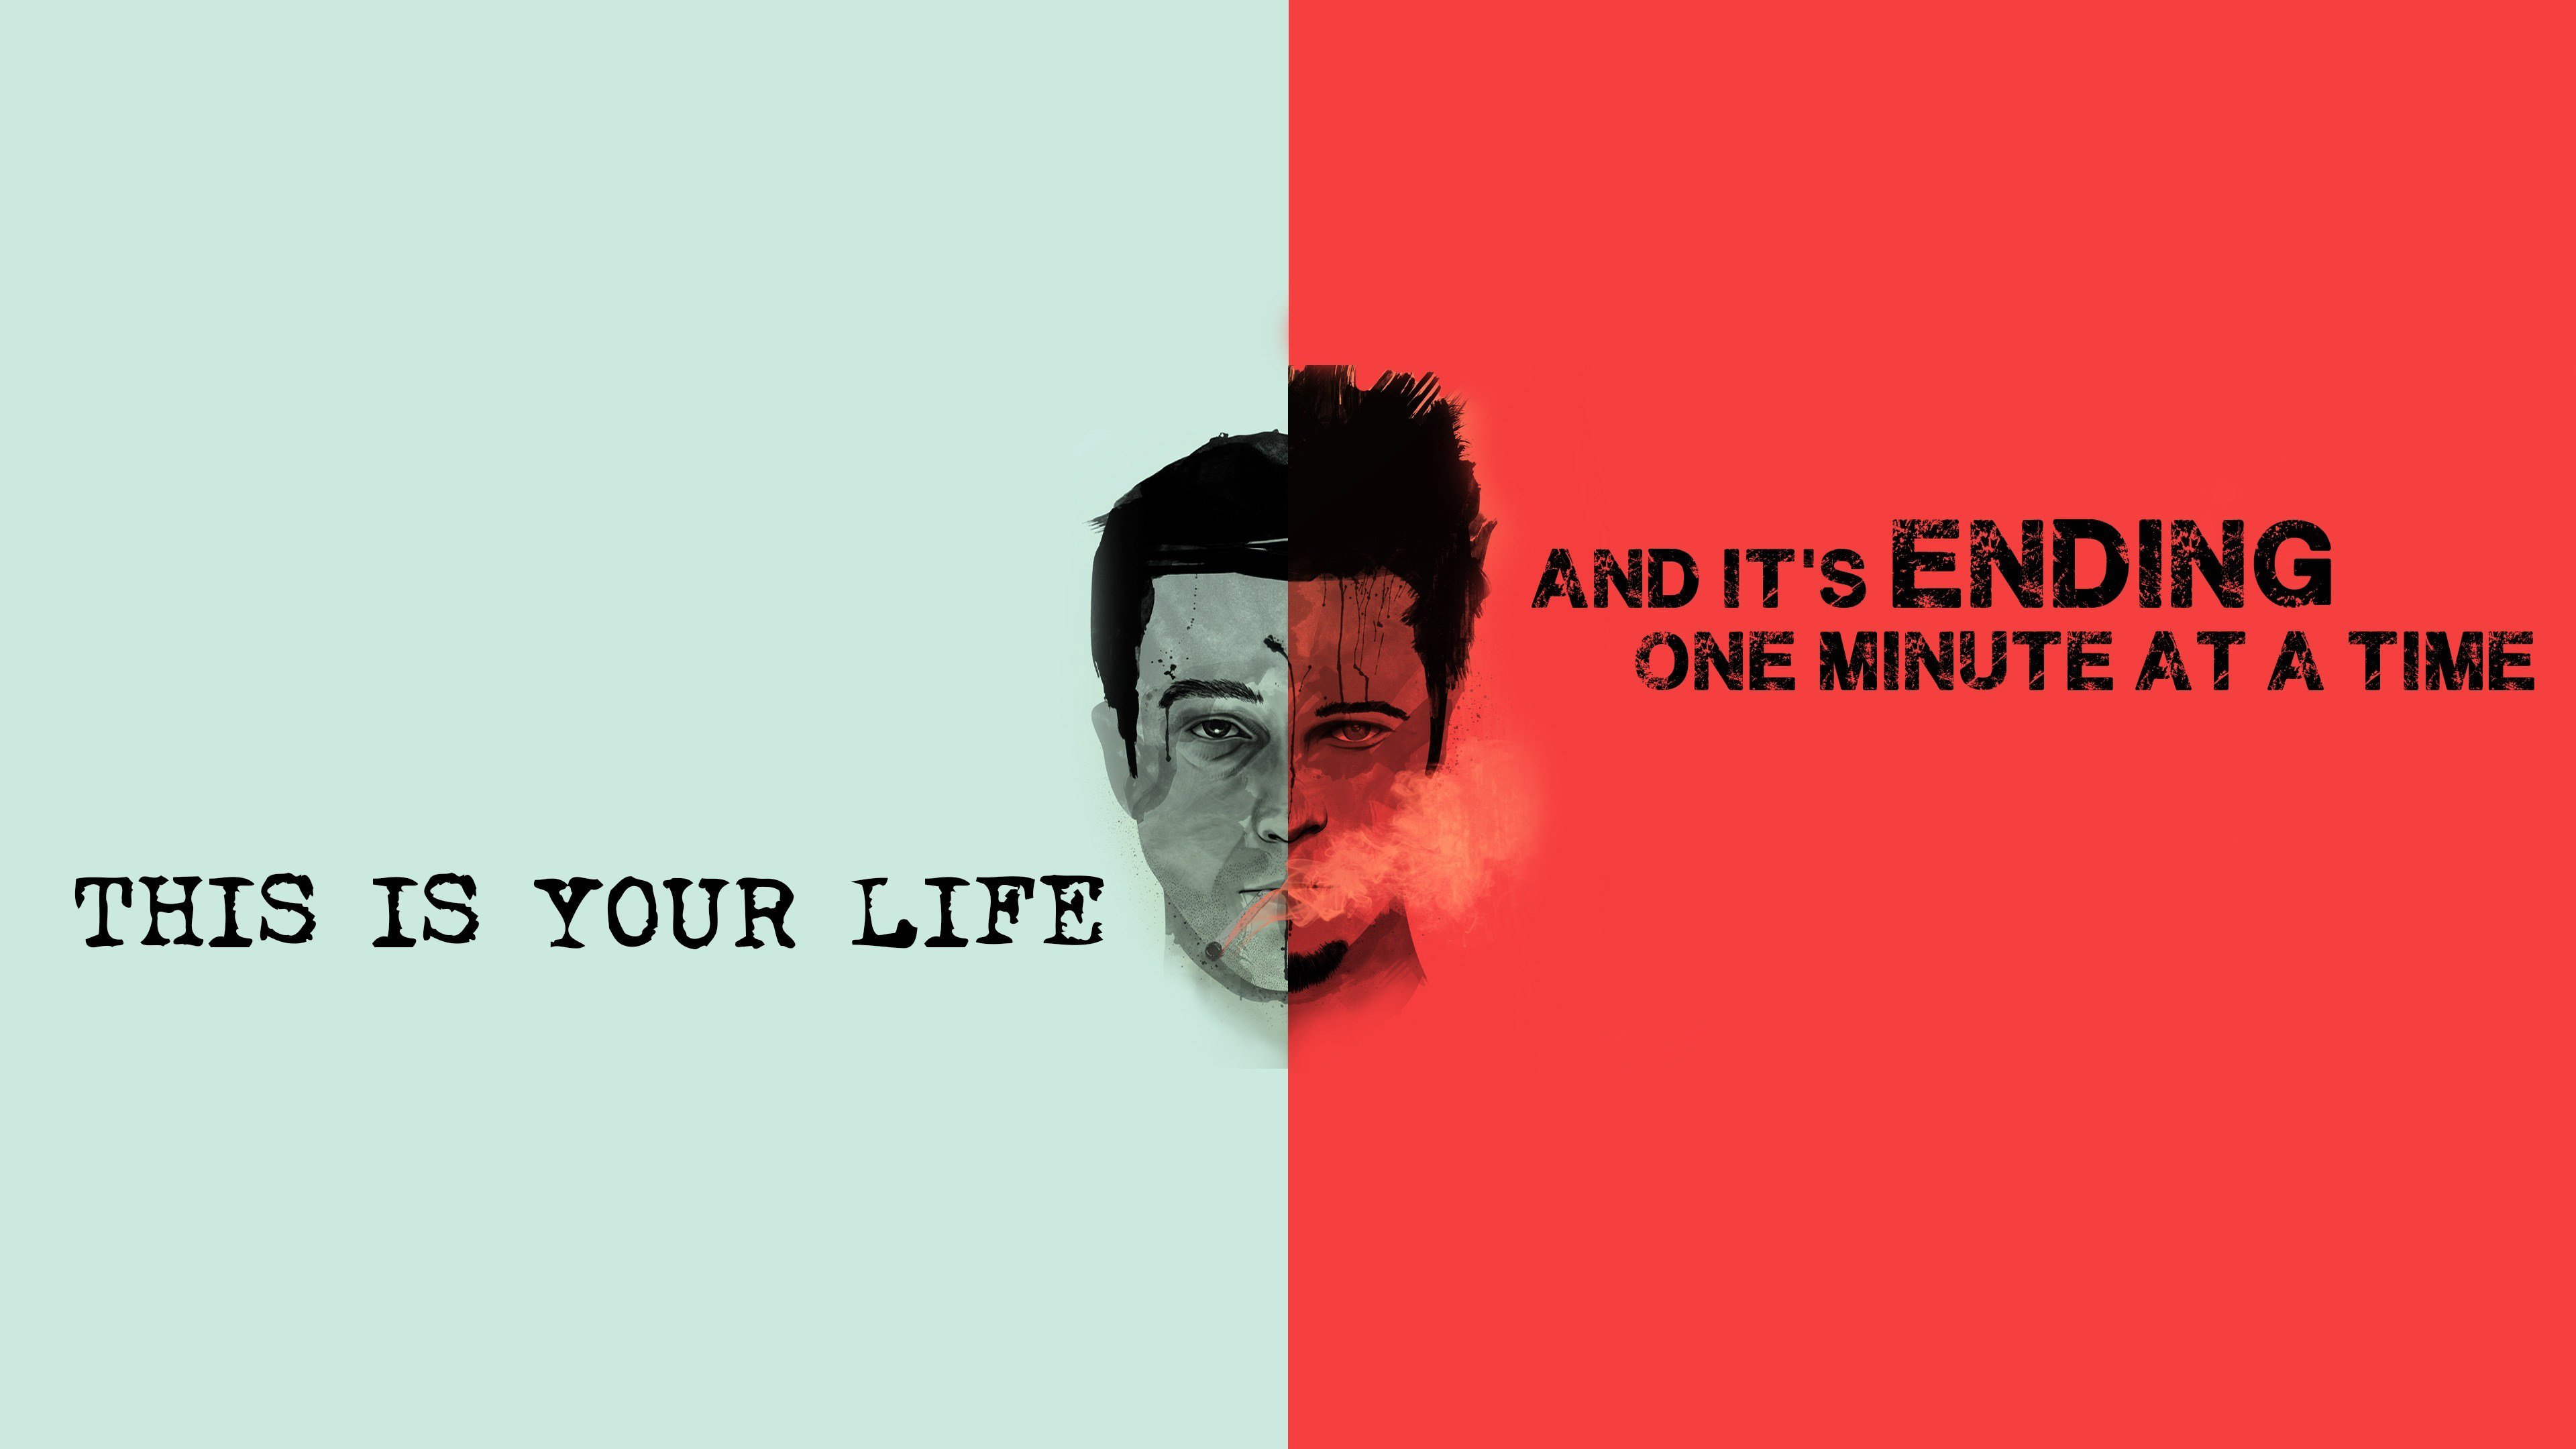 Fight Club Quote Wallpaper for Desktop 4K 3840x2160